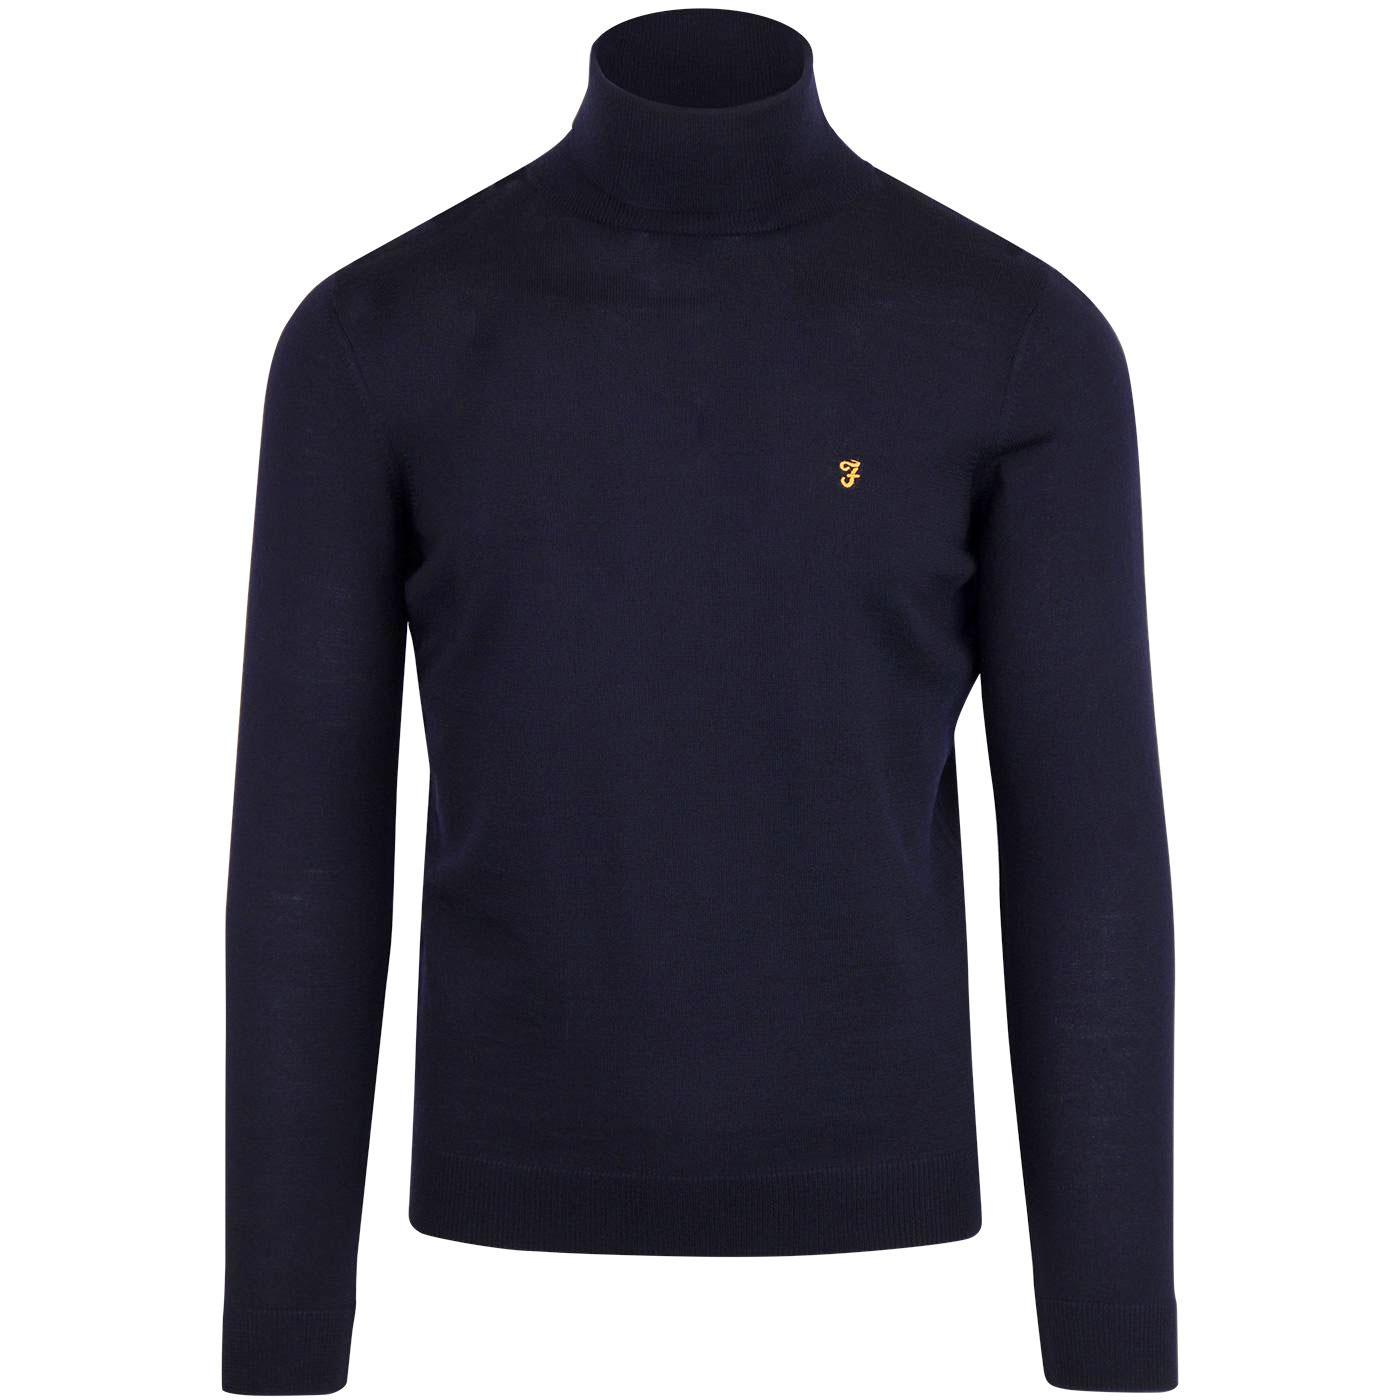 Gosforth FARAH 60s Mod Roll Neck Jumper TRUE NAVY